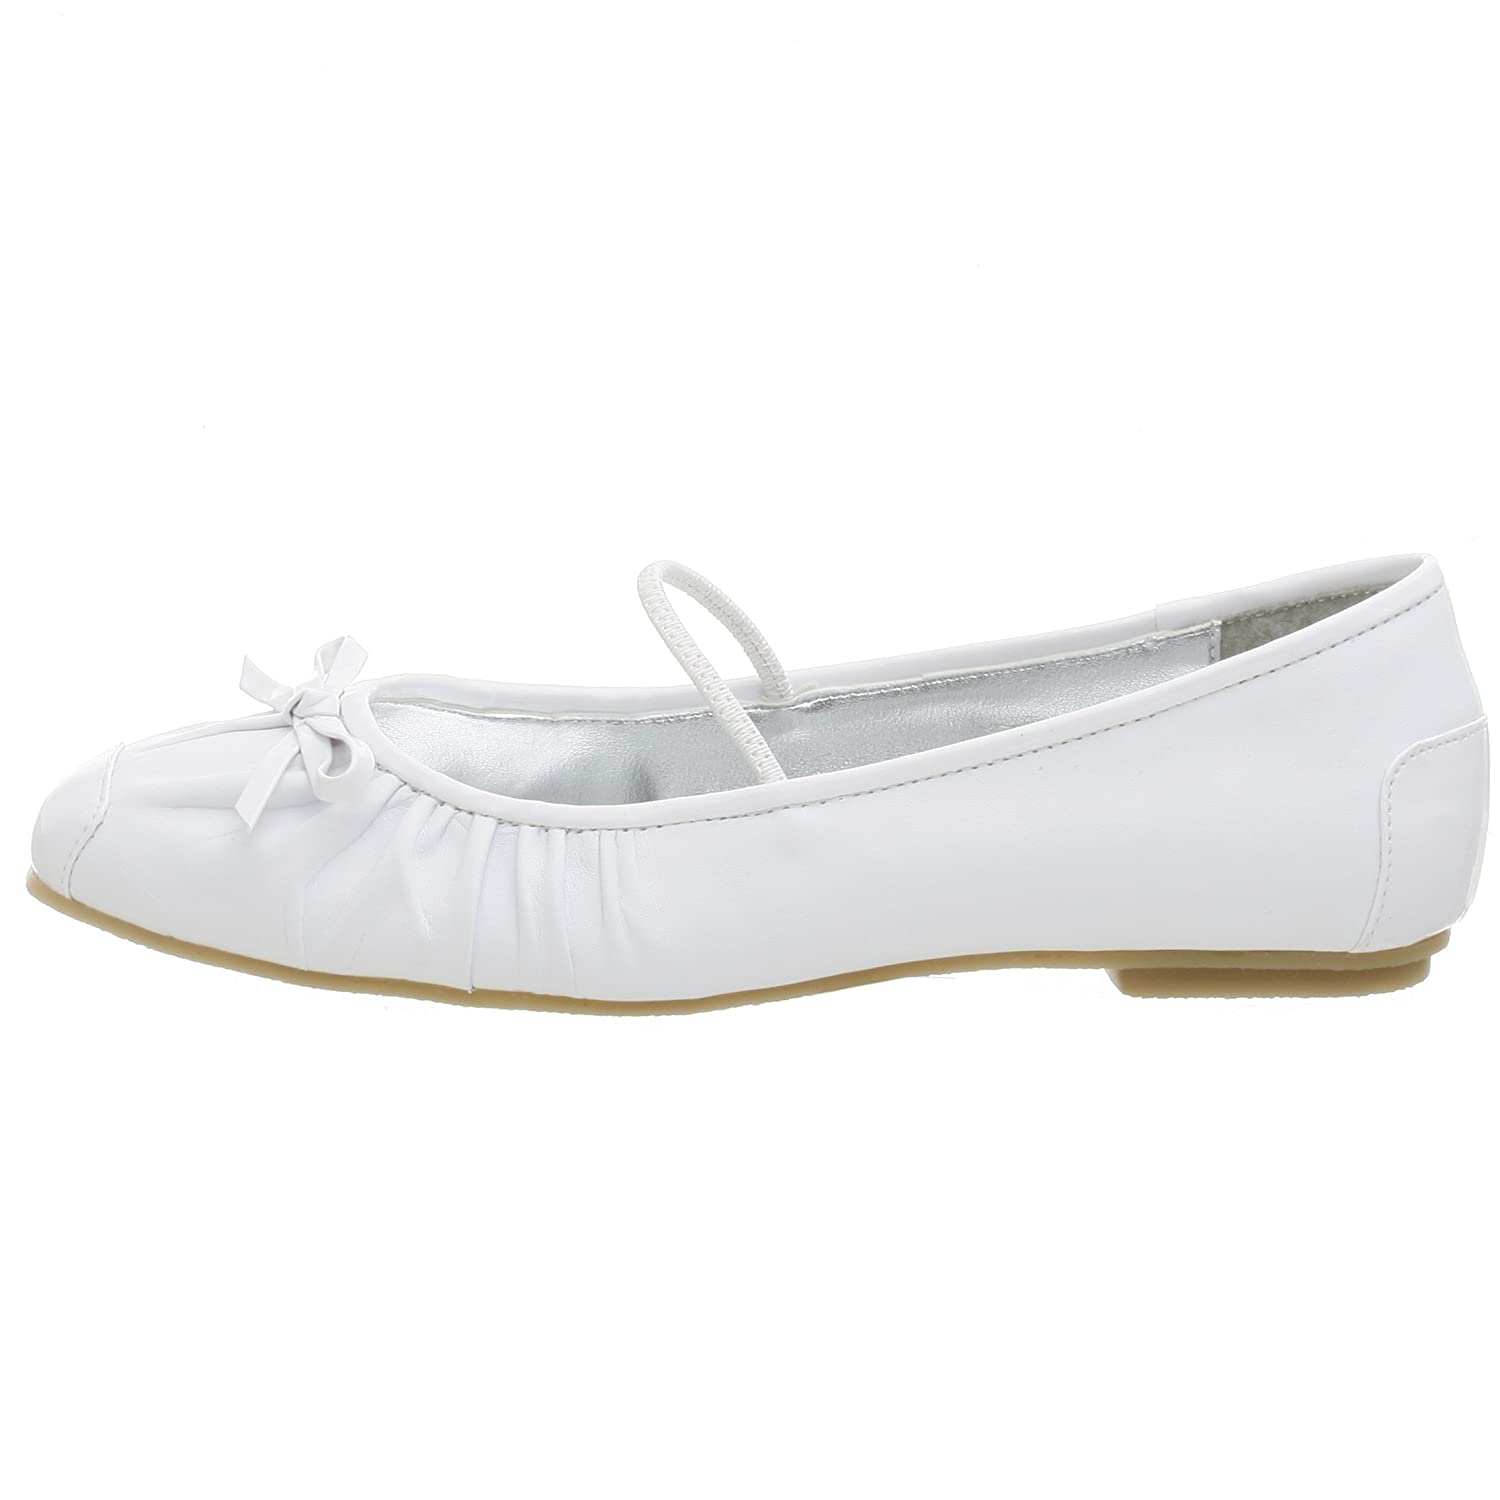 Kenneth Cole REACTION Little Kid//Big Kid Let It Bow Ballet Flat